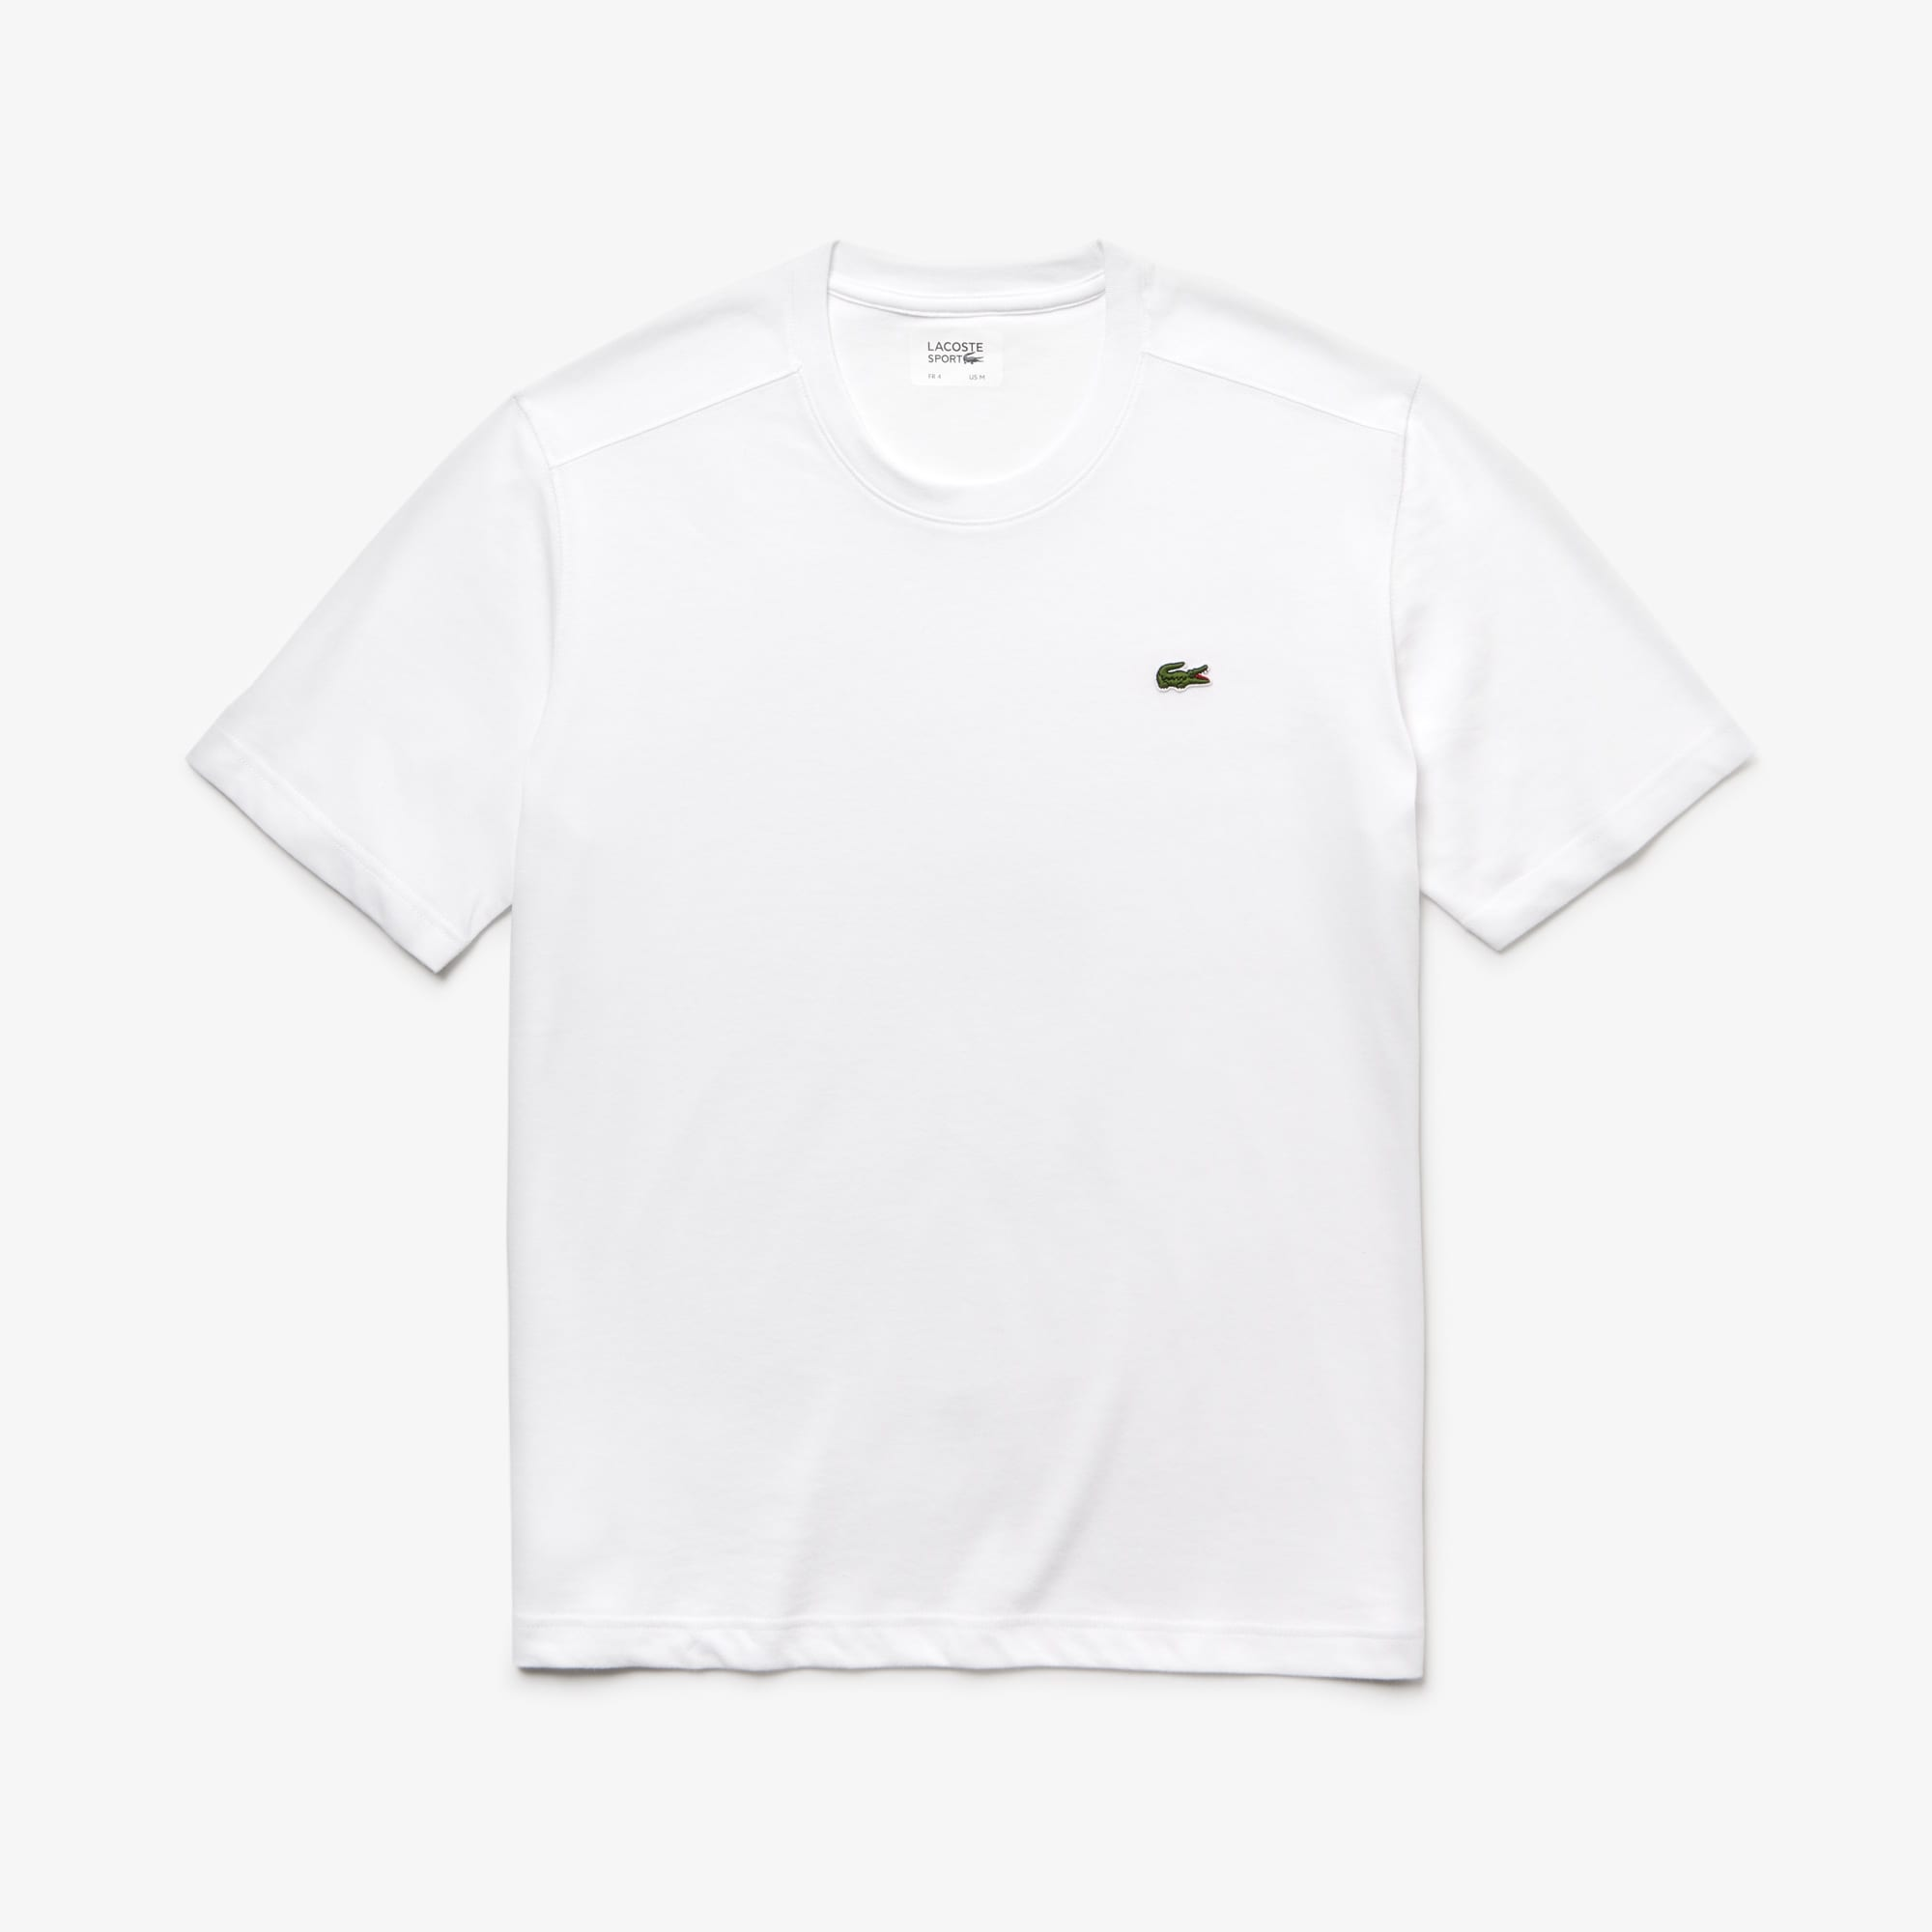 Men's Sport Crew Neck Tennis T Shirt by Lacoste